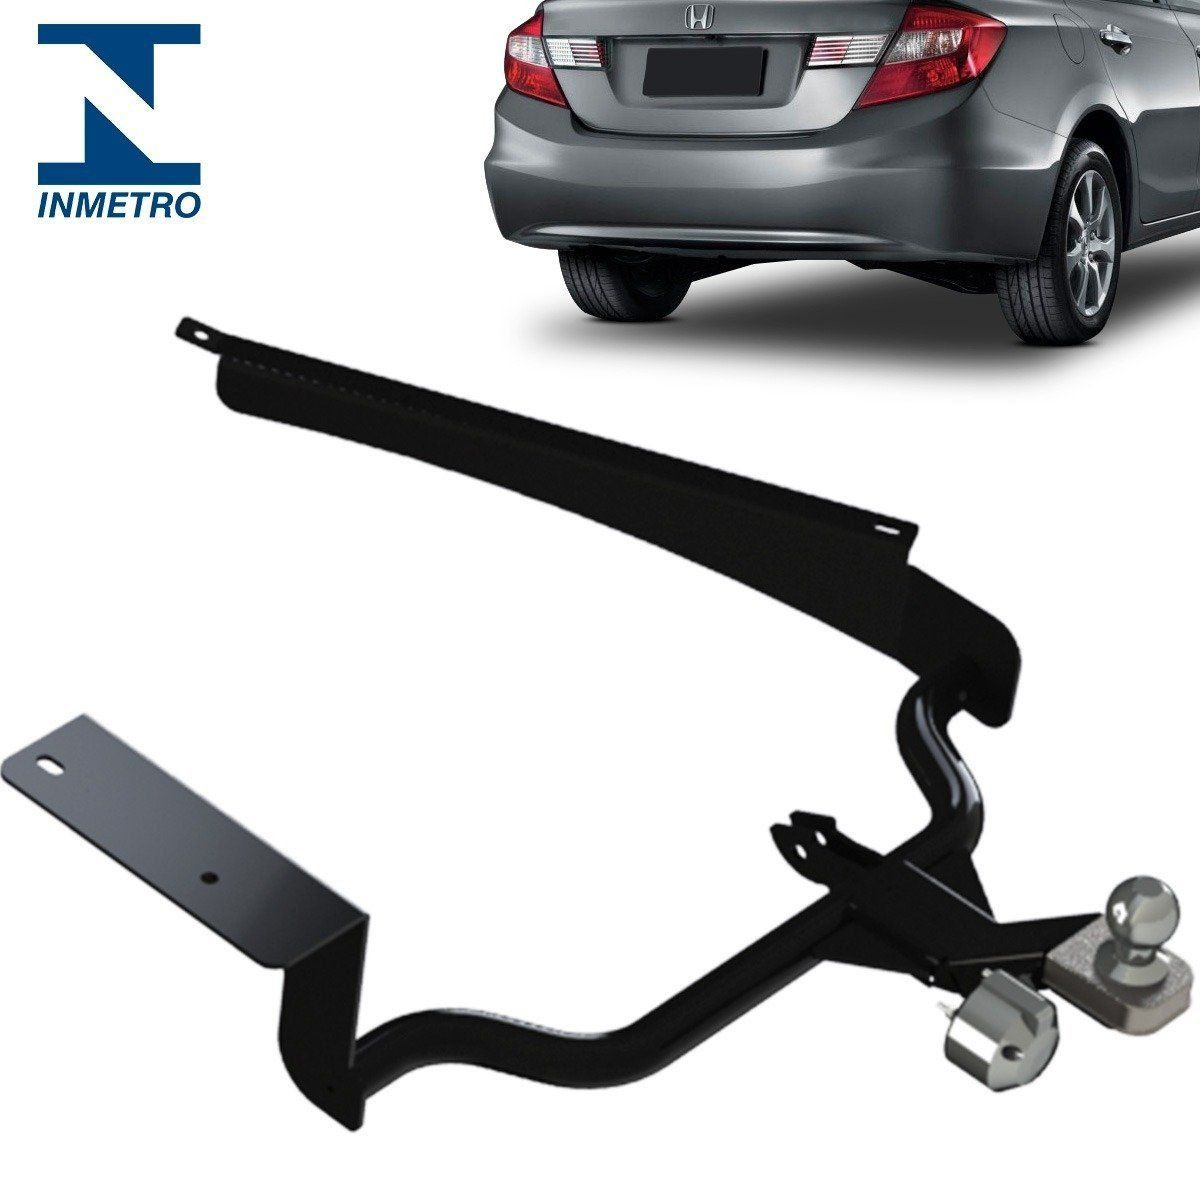 Engate Reboque Civic 2012 2013 2014 2015 2016 Fixo 700 Kg